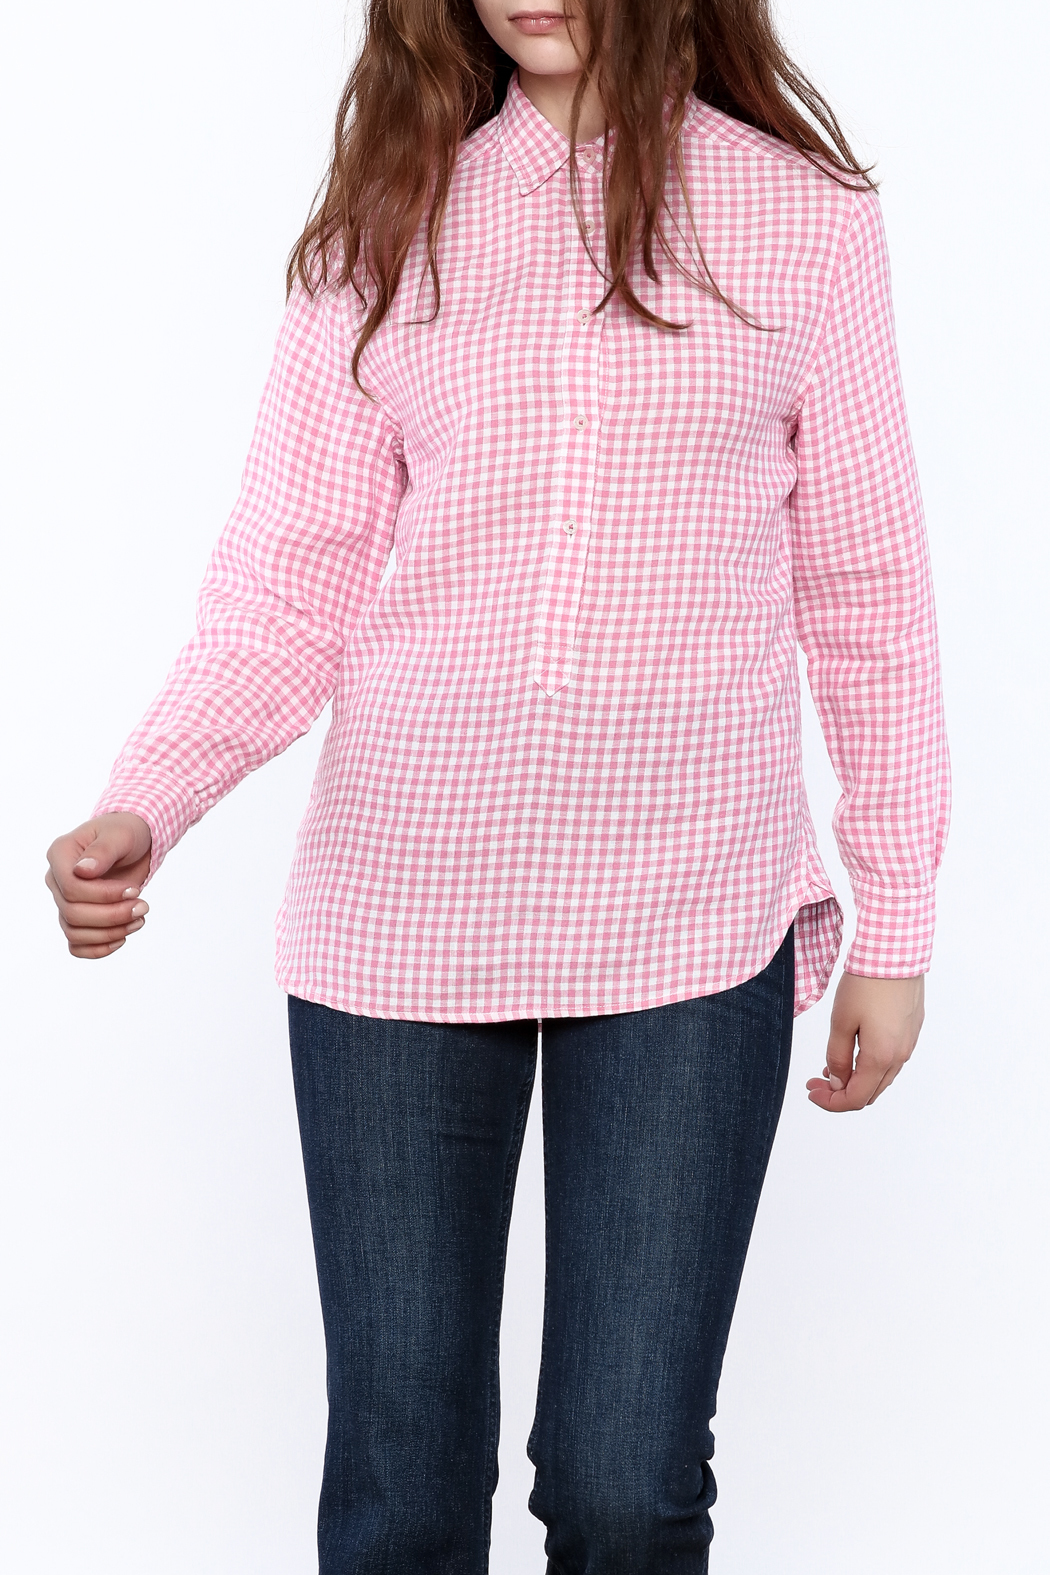 Southern Tide Gingham Button-Down Top - Main Image